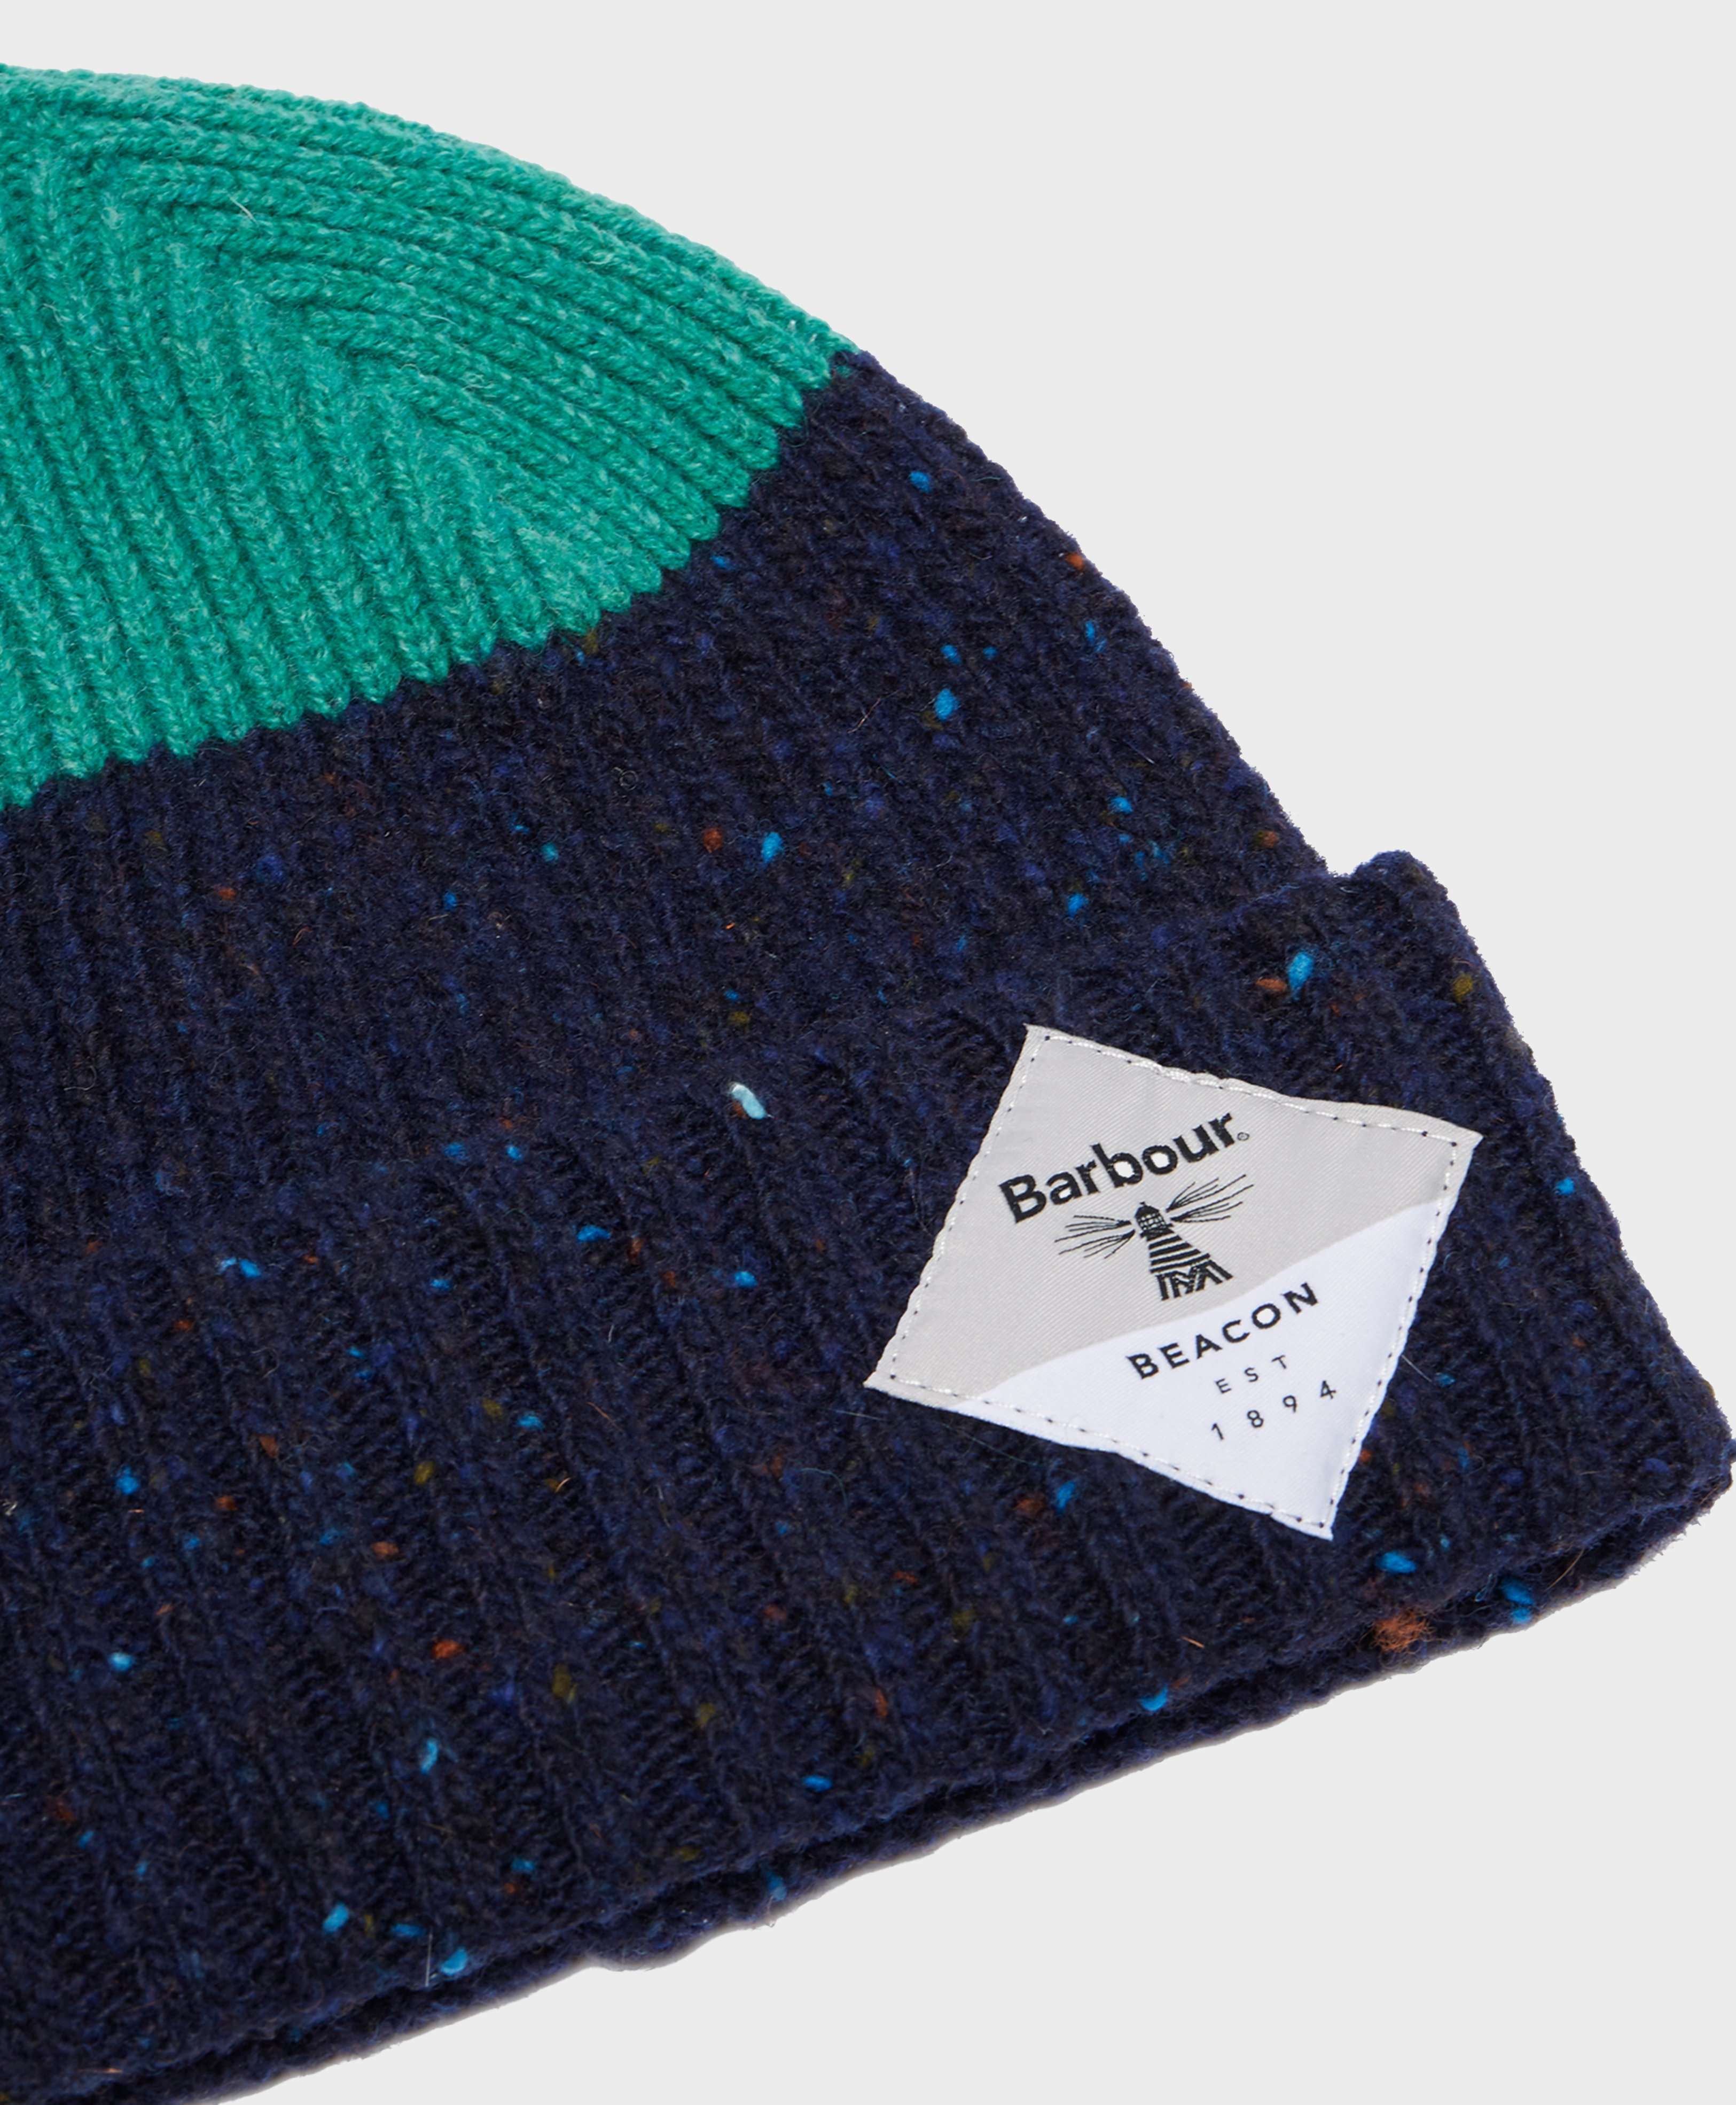 Barbour Beacon Birkhouse Knitted Beanie